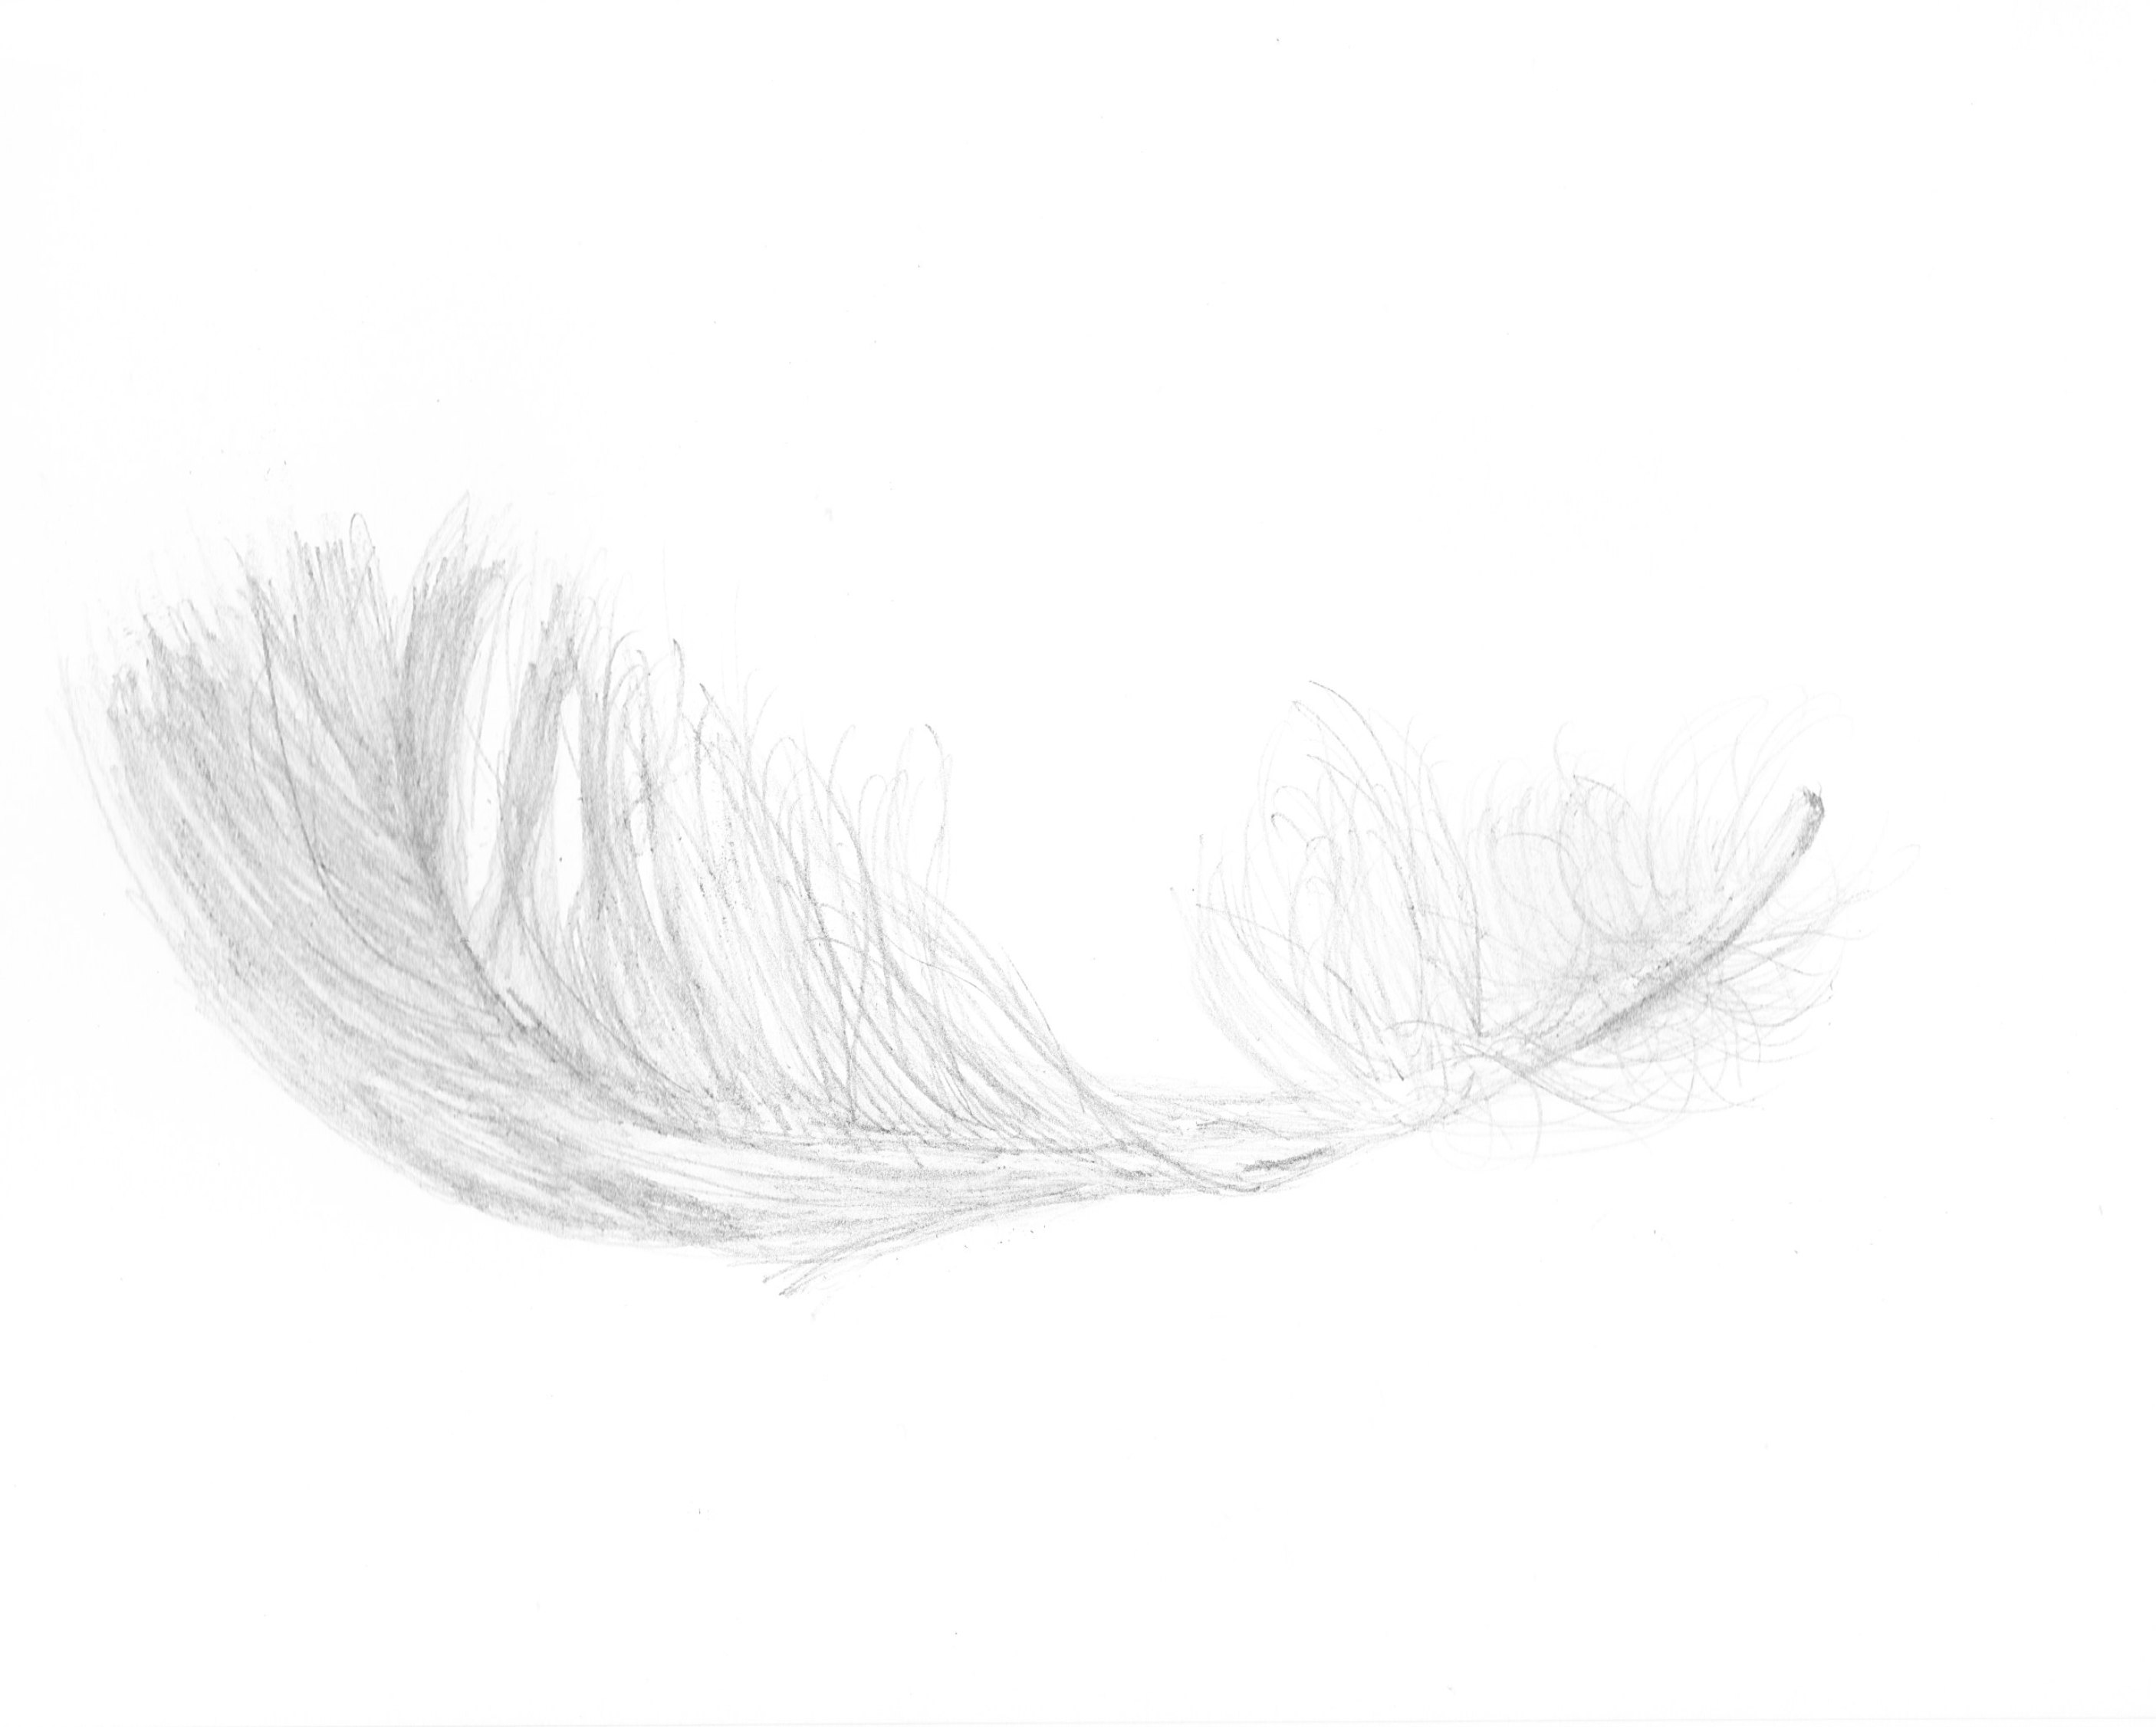 Down Feather Png - Free White Feathers Png, Download Free Clip Art, Free Clip Art on ...